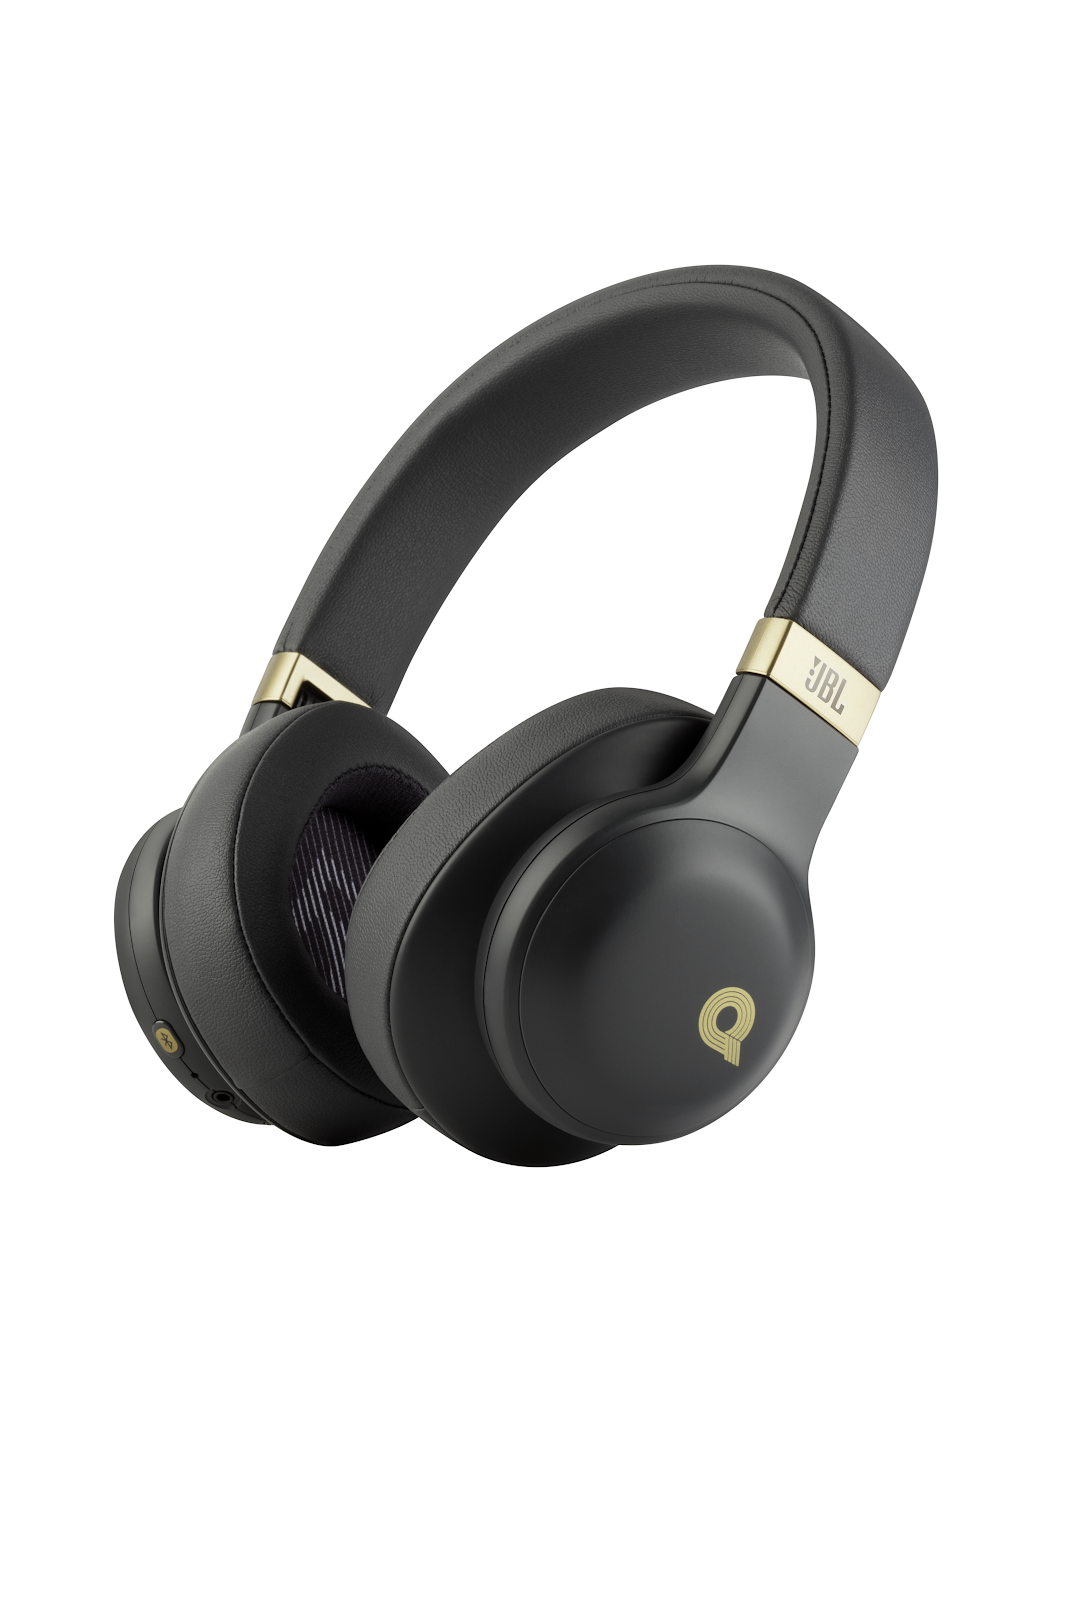 JBL E55BT Quincy Edition Wireless over-ear headphones